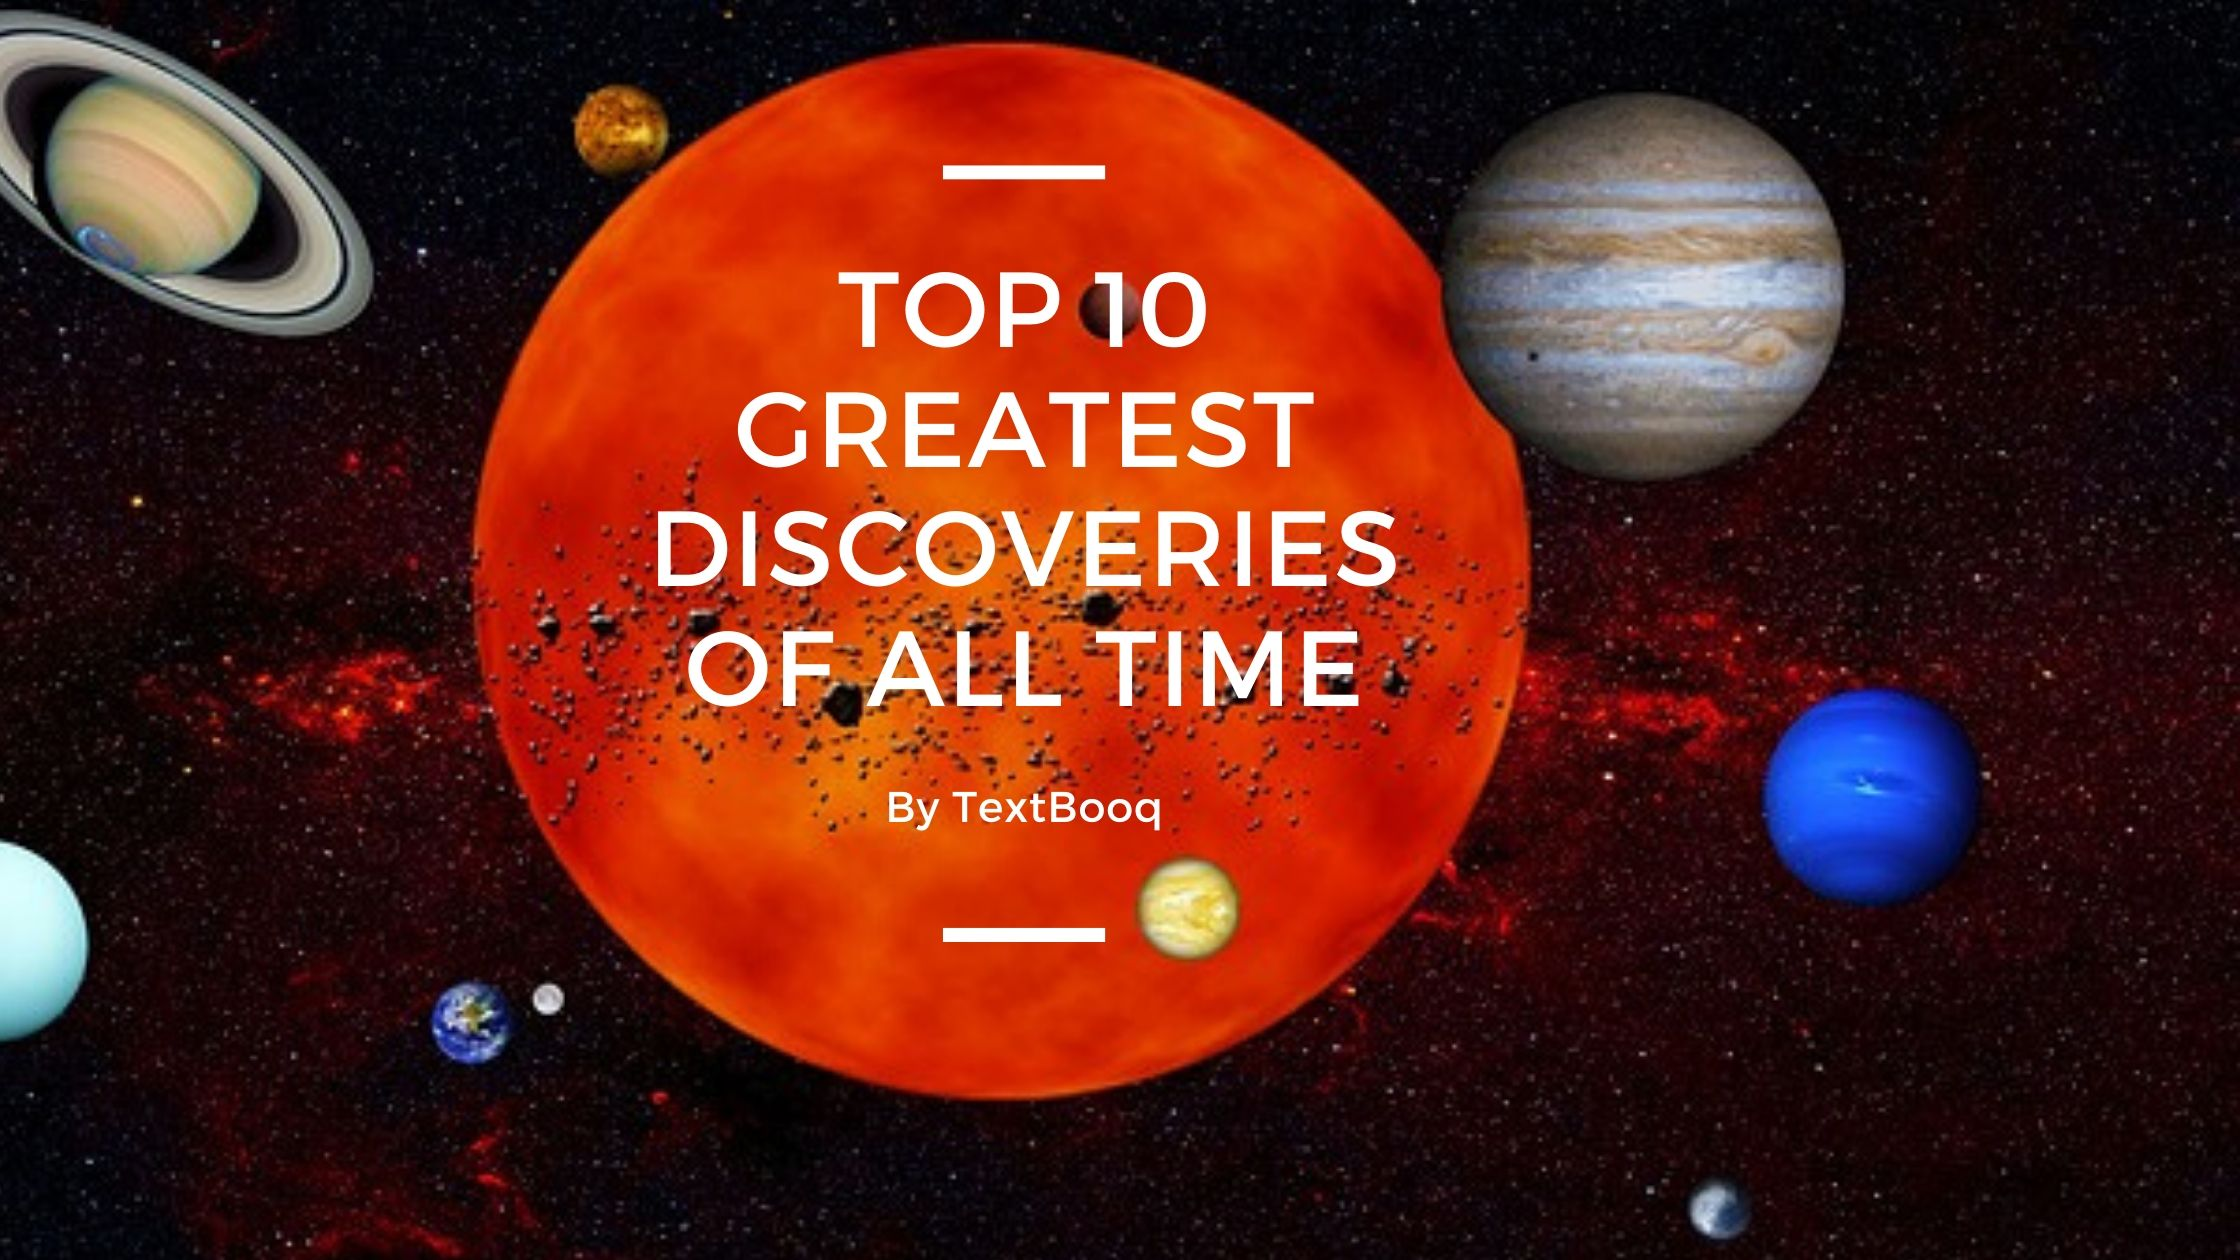 Top 10 Greatest Discoveries of All Time